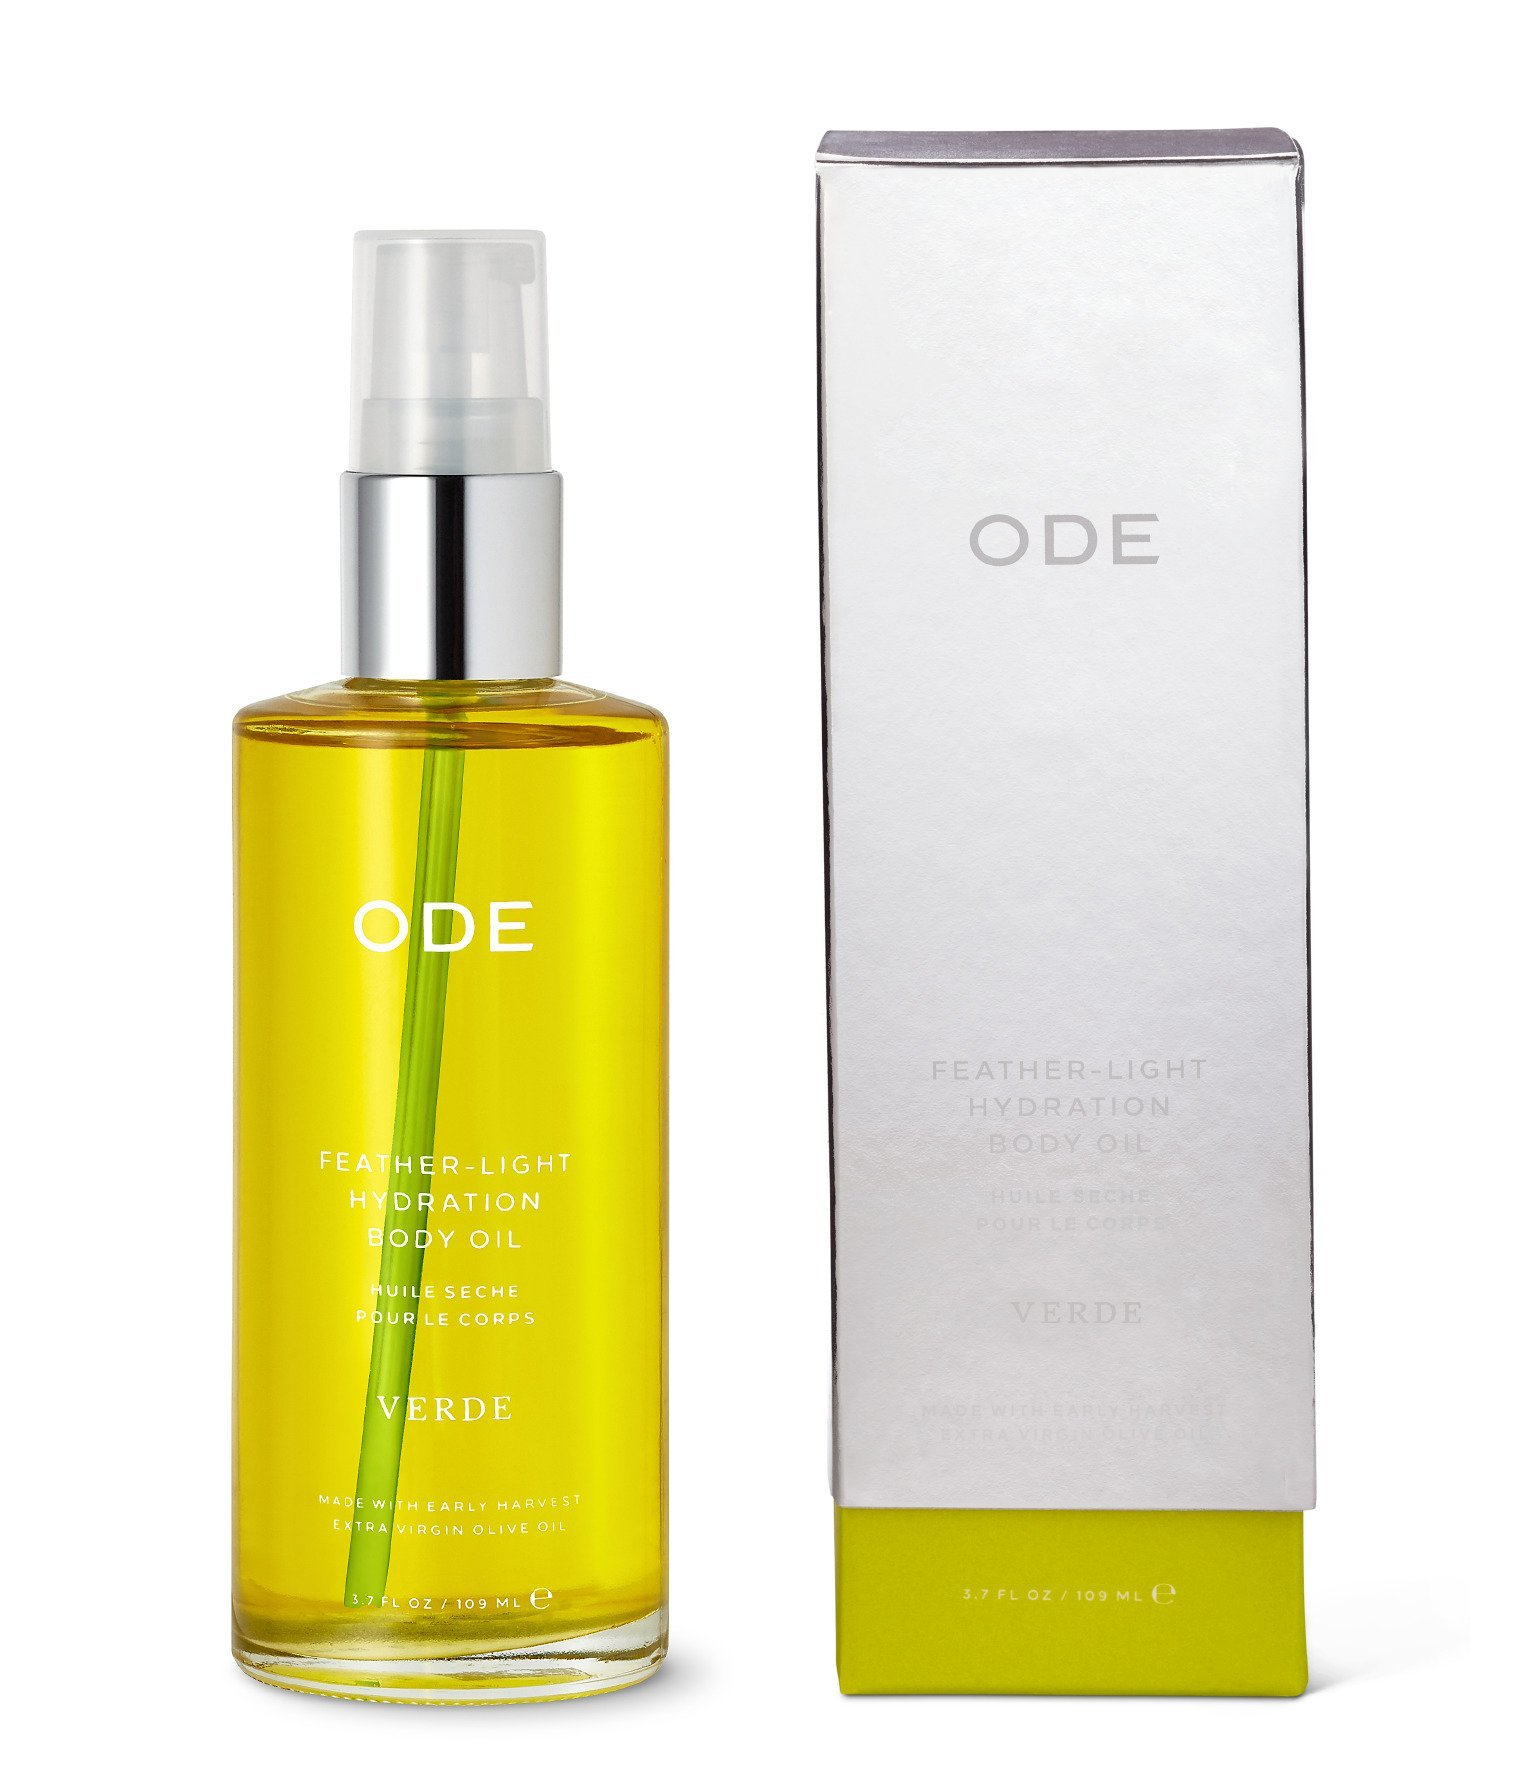 ODE natural beauty - Verde Feather-Light Hydration Body Oil